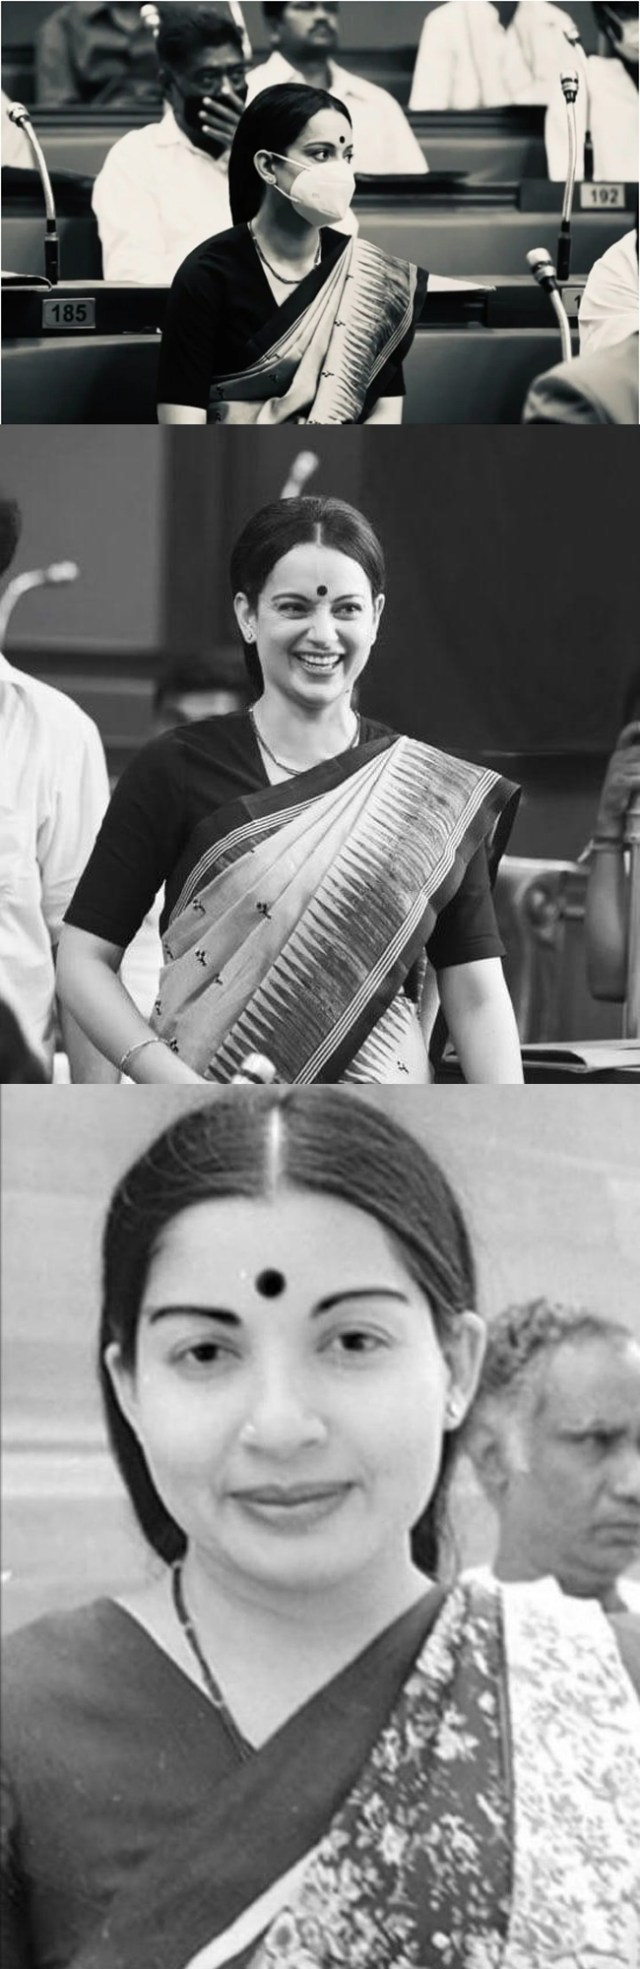 #Talaivi .. Jayalalithaa in the assembly with a mask